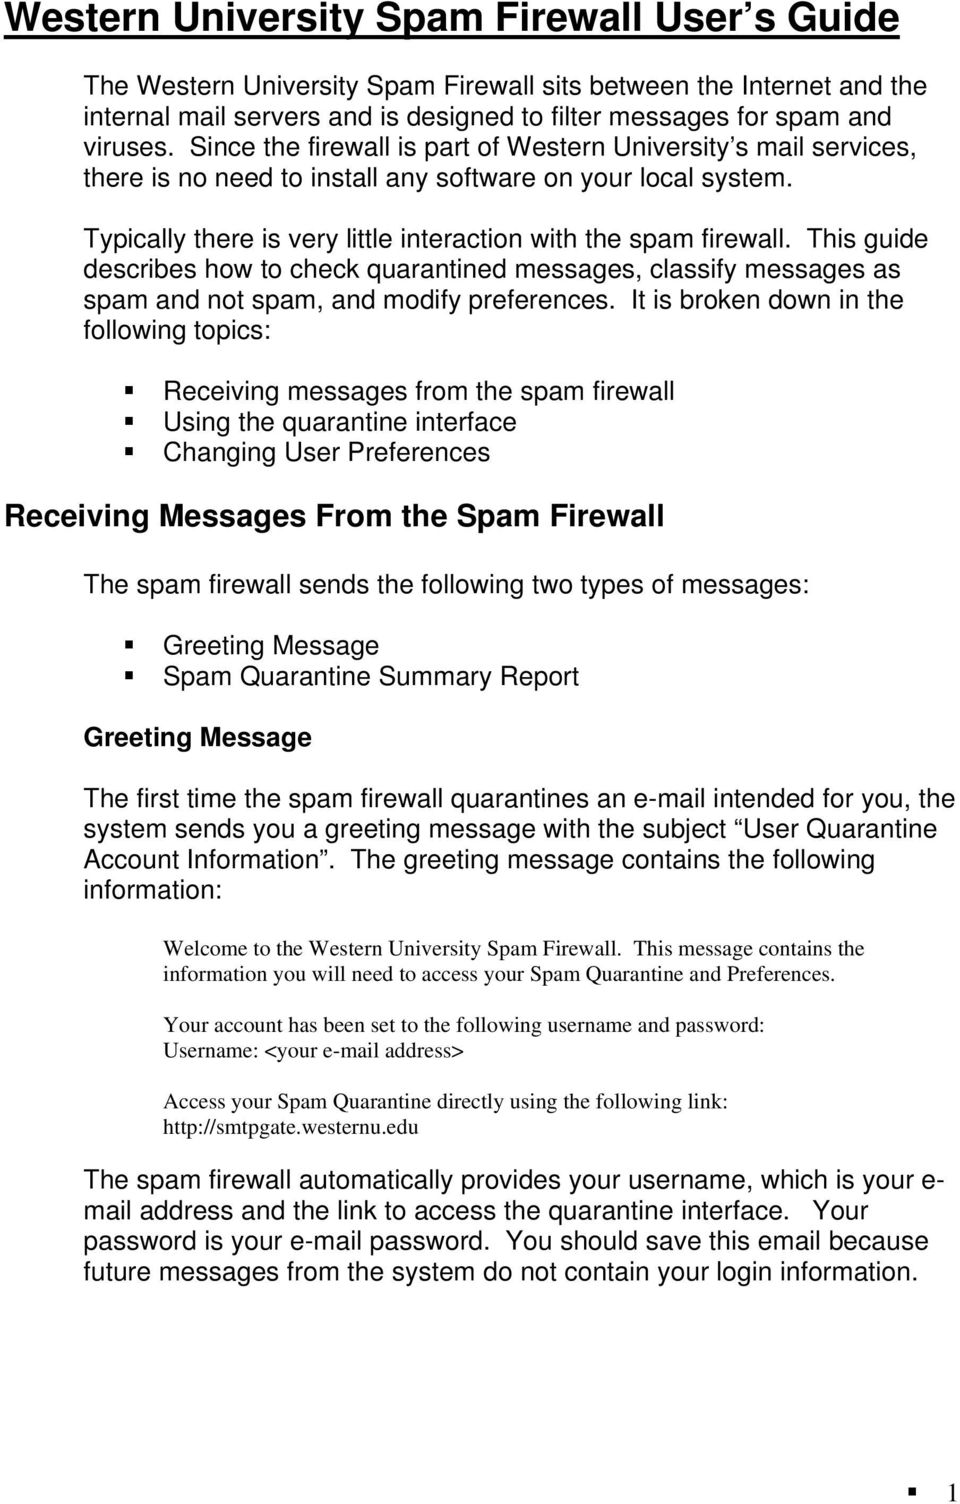 This guide describes how to check quarantined messages, classify messages as spam and not spam, and modify preferences.